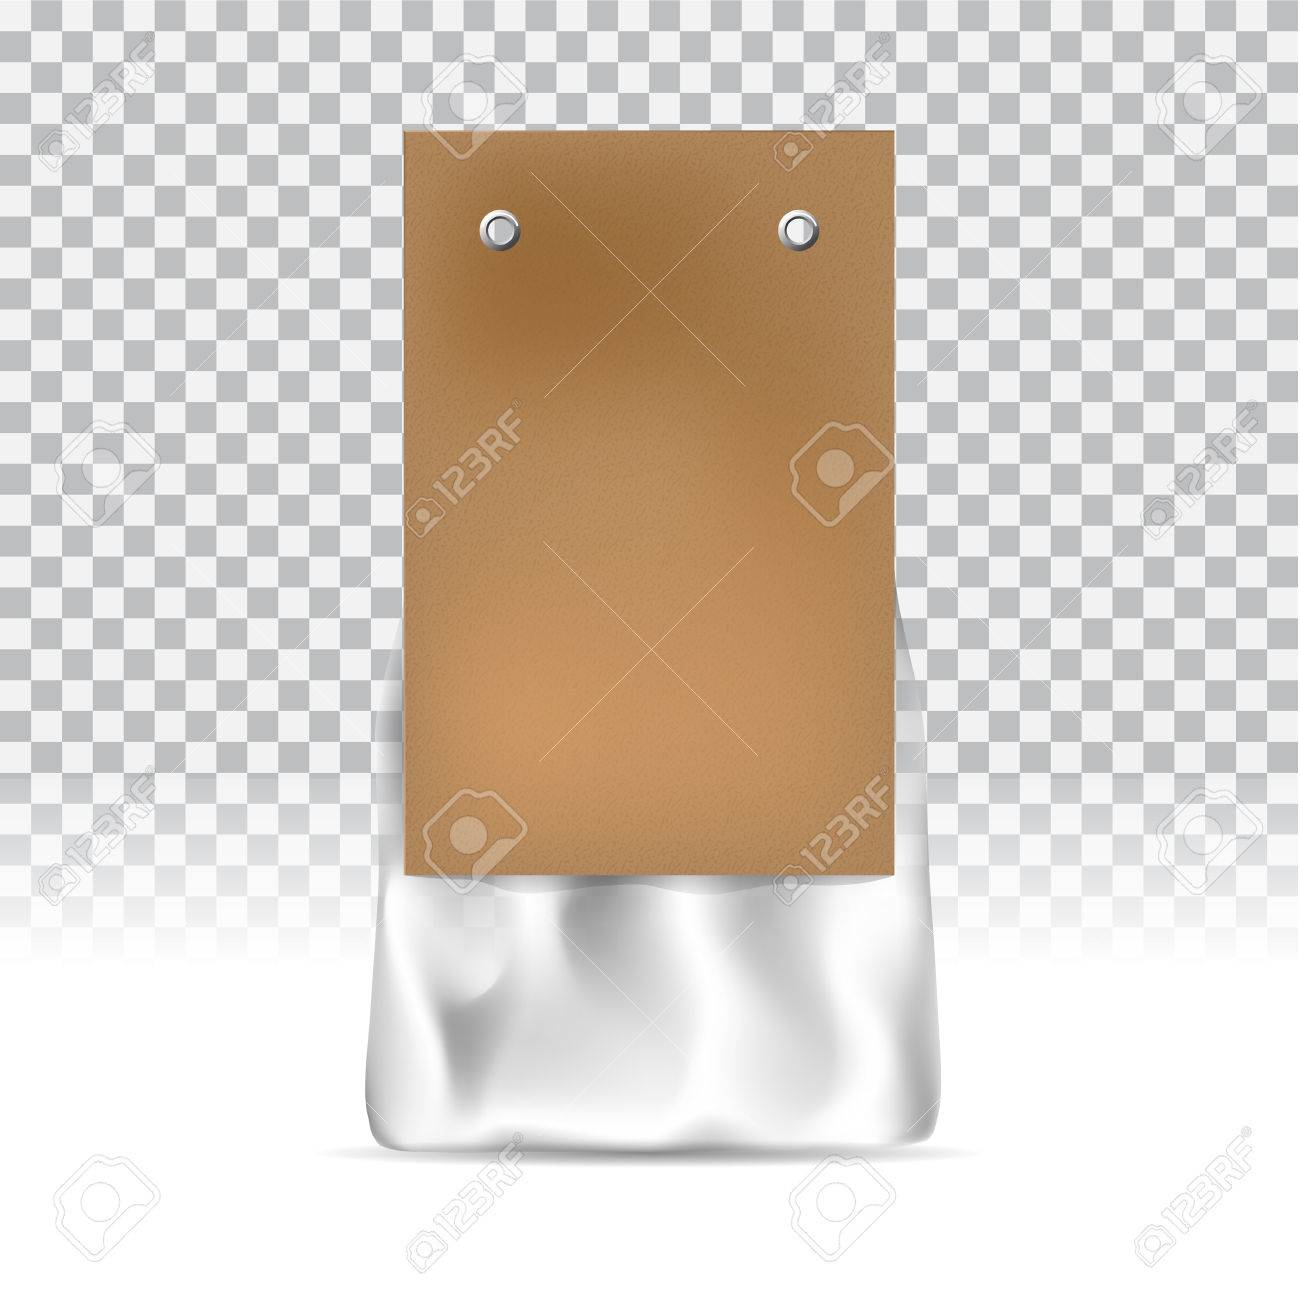 8f2d00ab5e38d Food snack pack on transparent background. Craft paper and packing tape.  Blank packaging mock